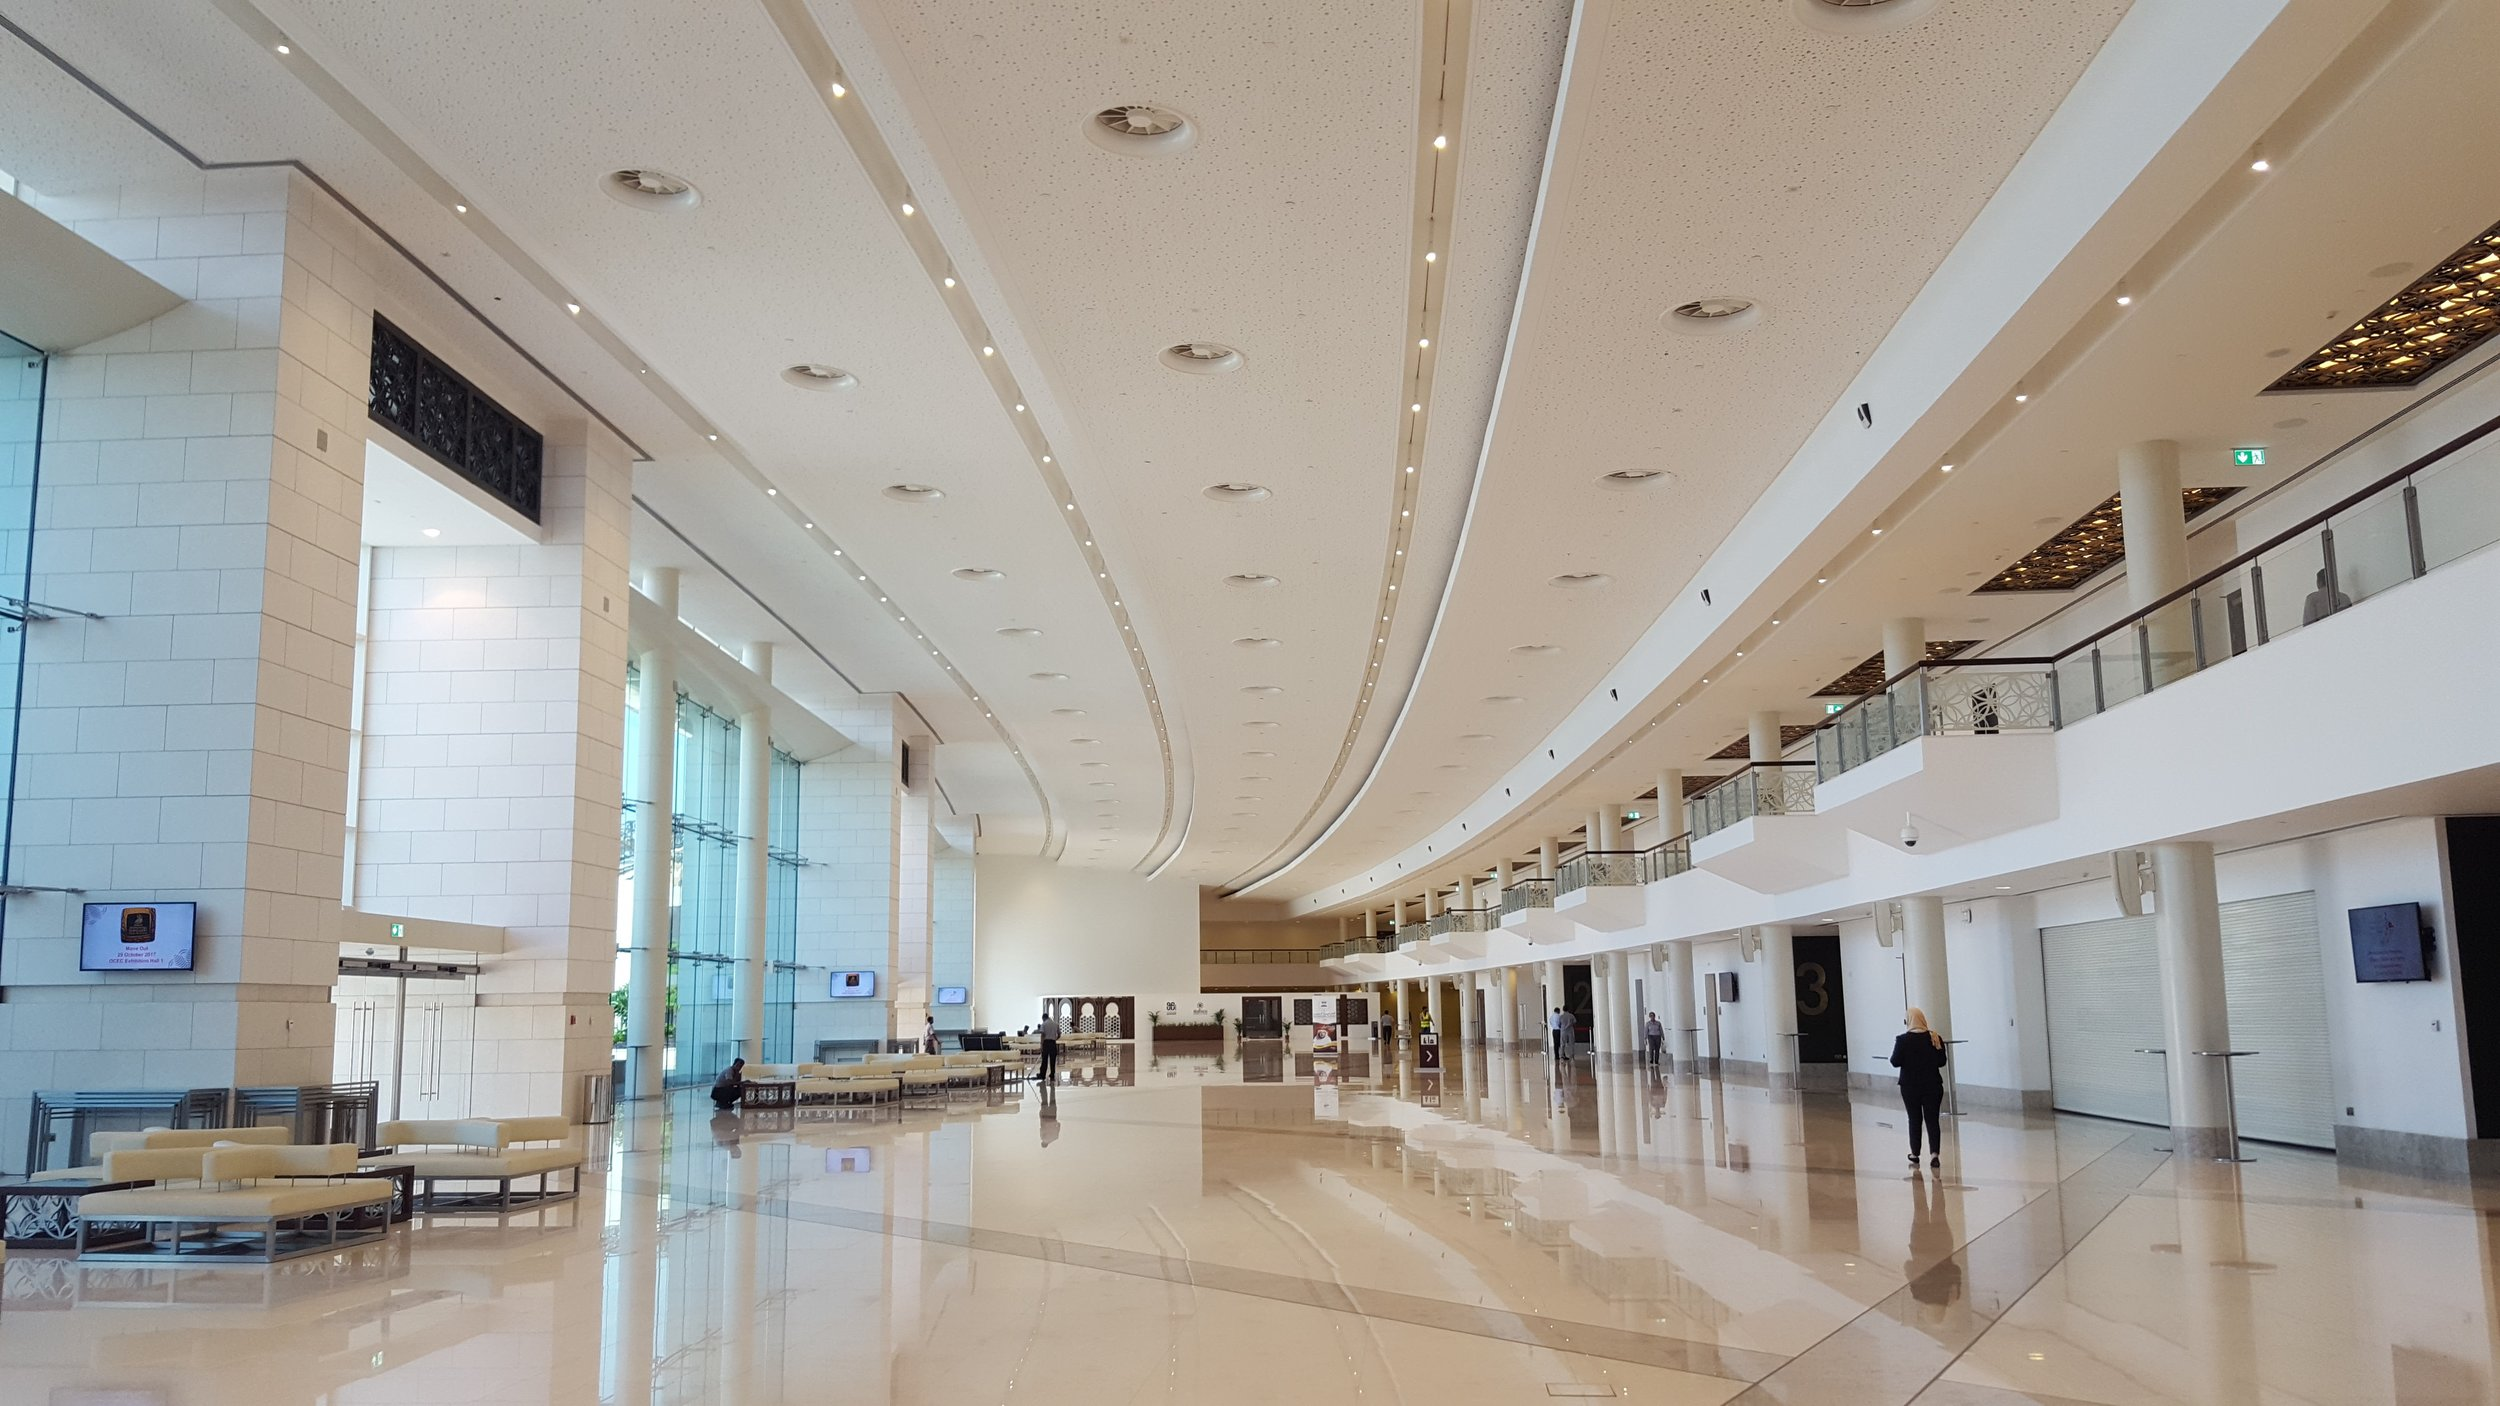 Oman Conference & Exhibition Centre - Muscat, Oman